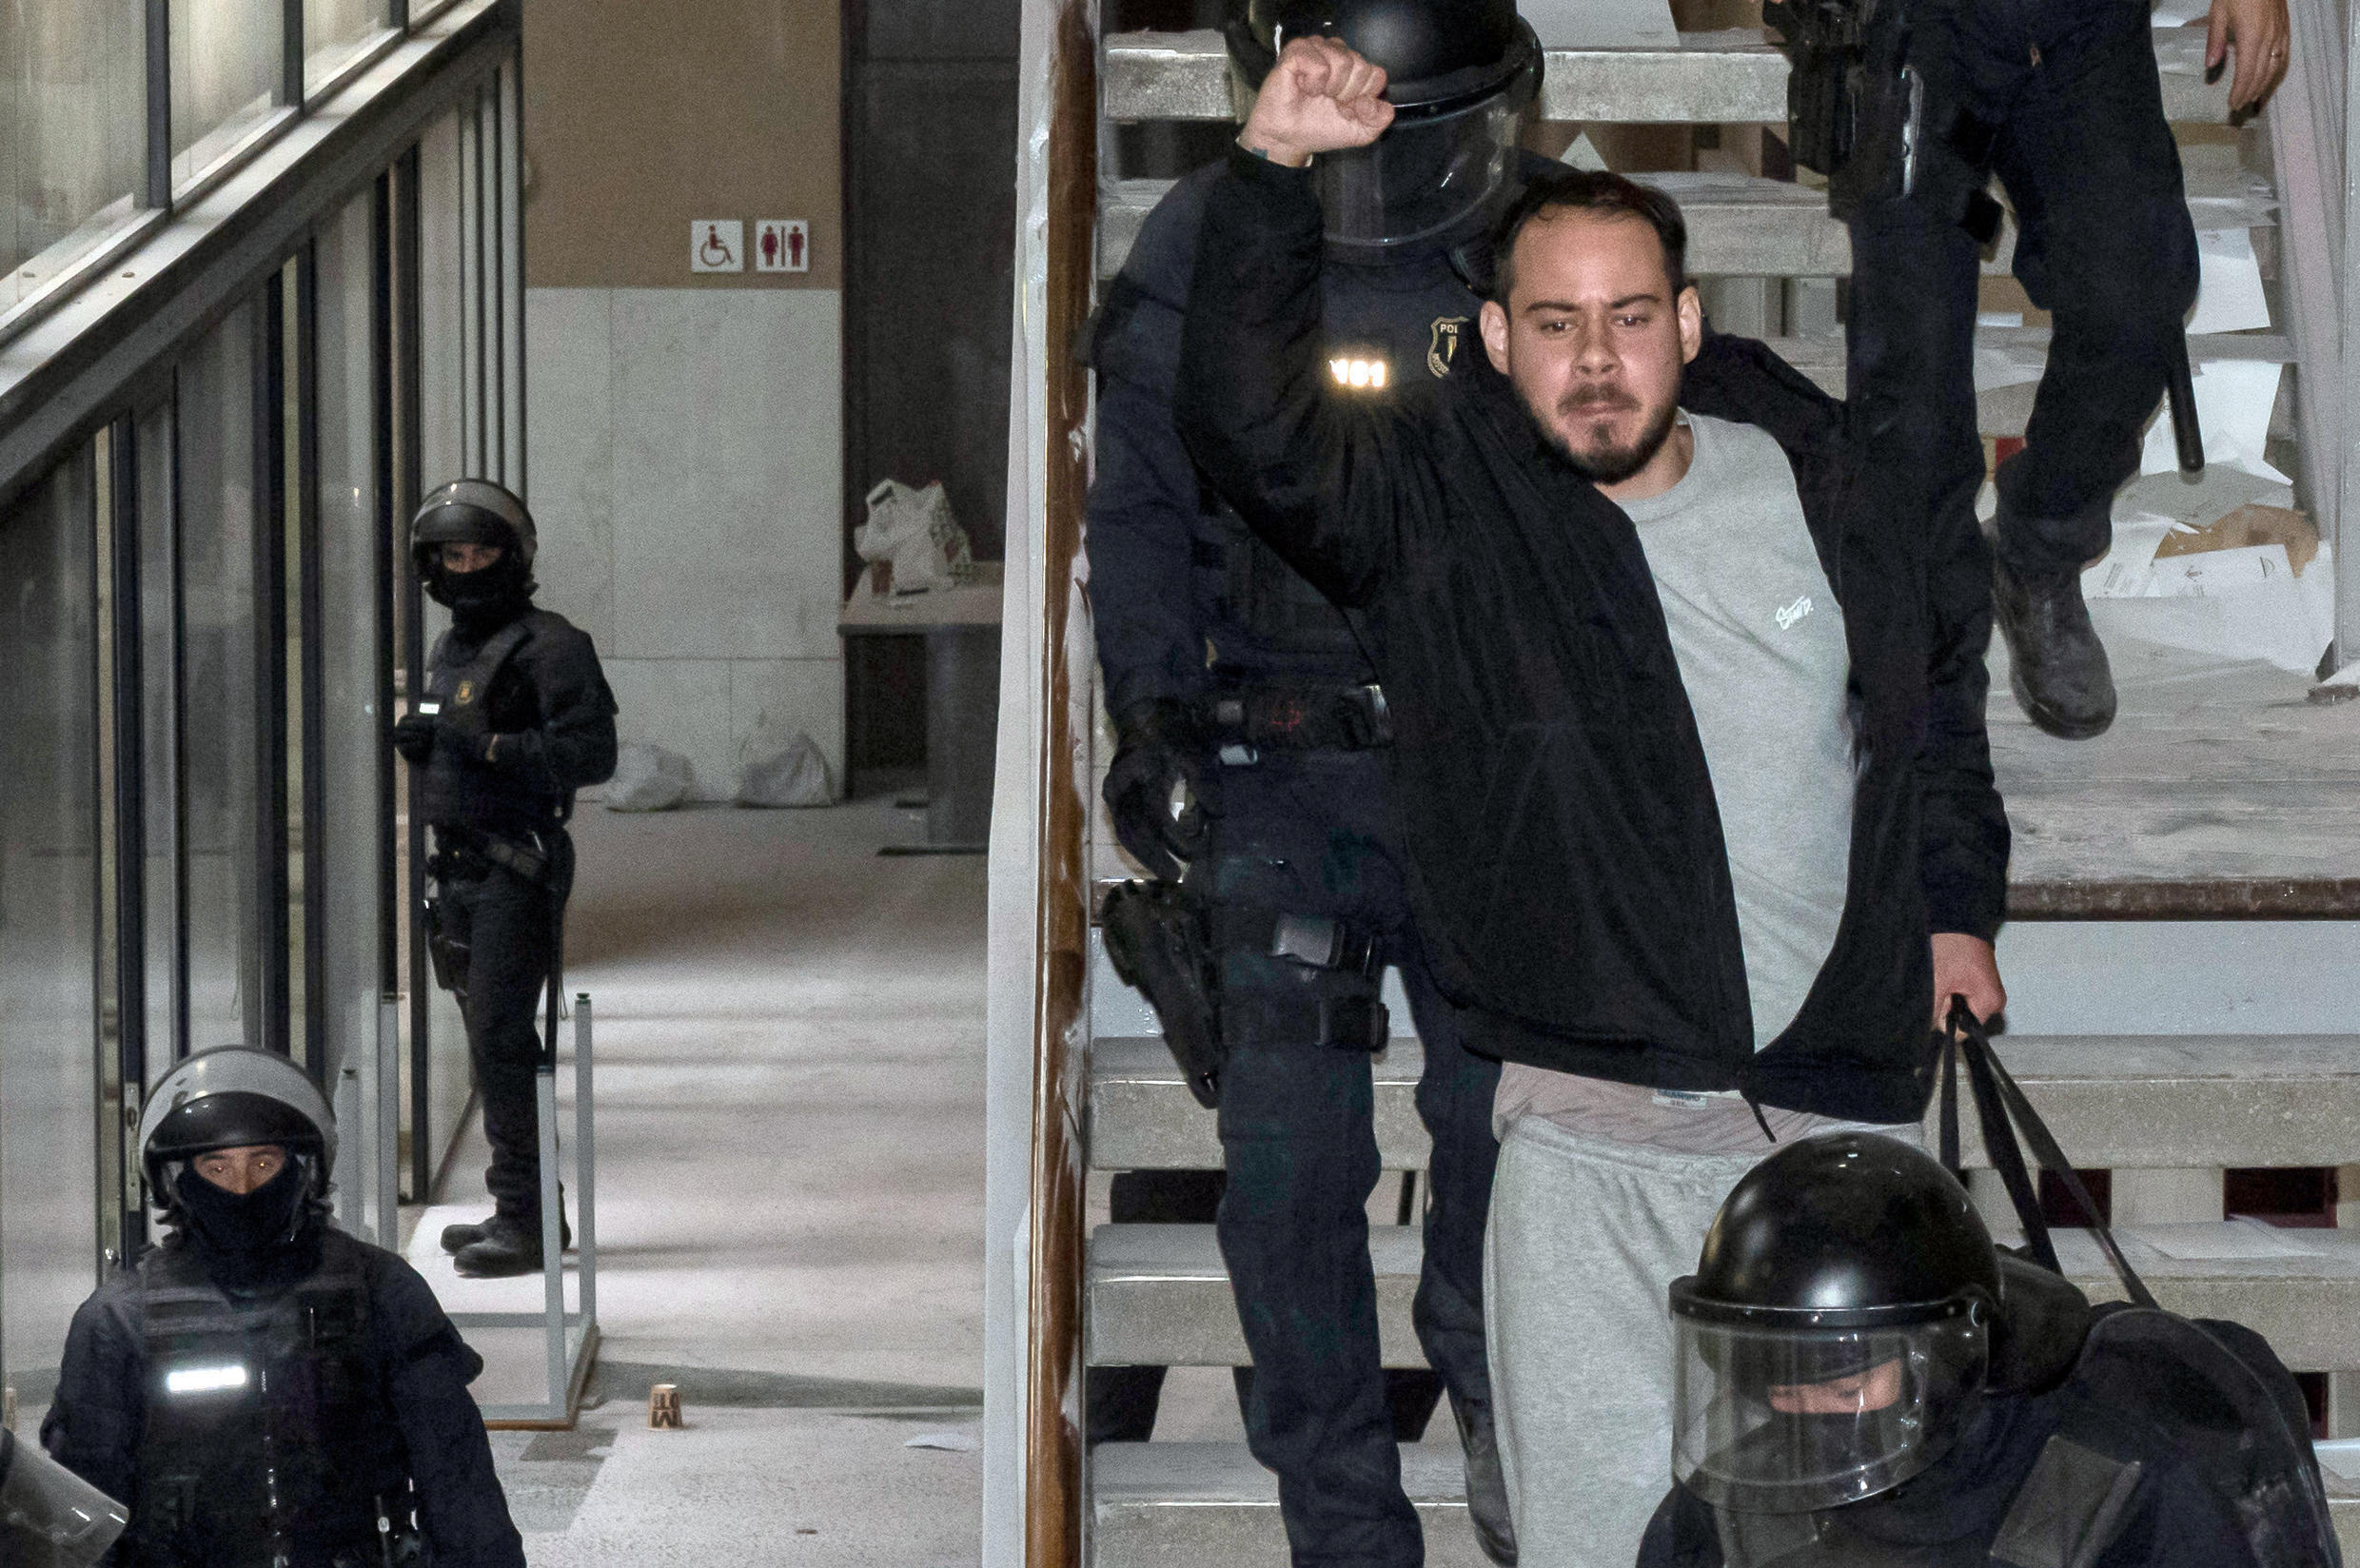 Hasel had been given until last Friday night to turn himself in to begin serving his sentence